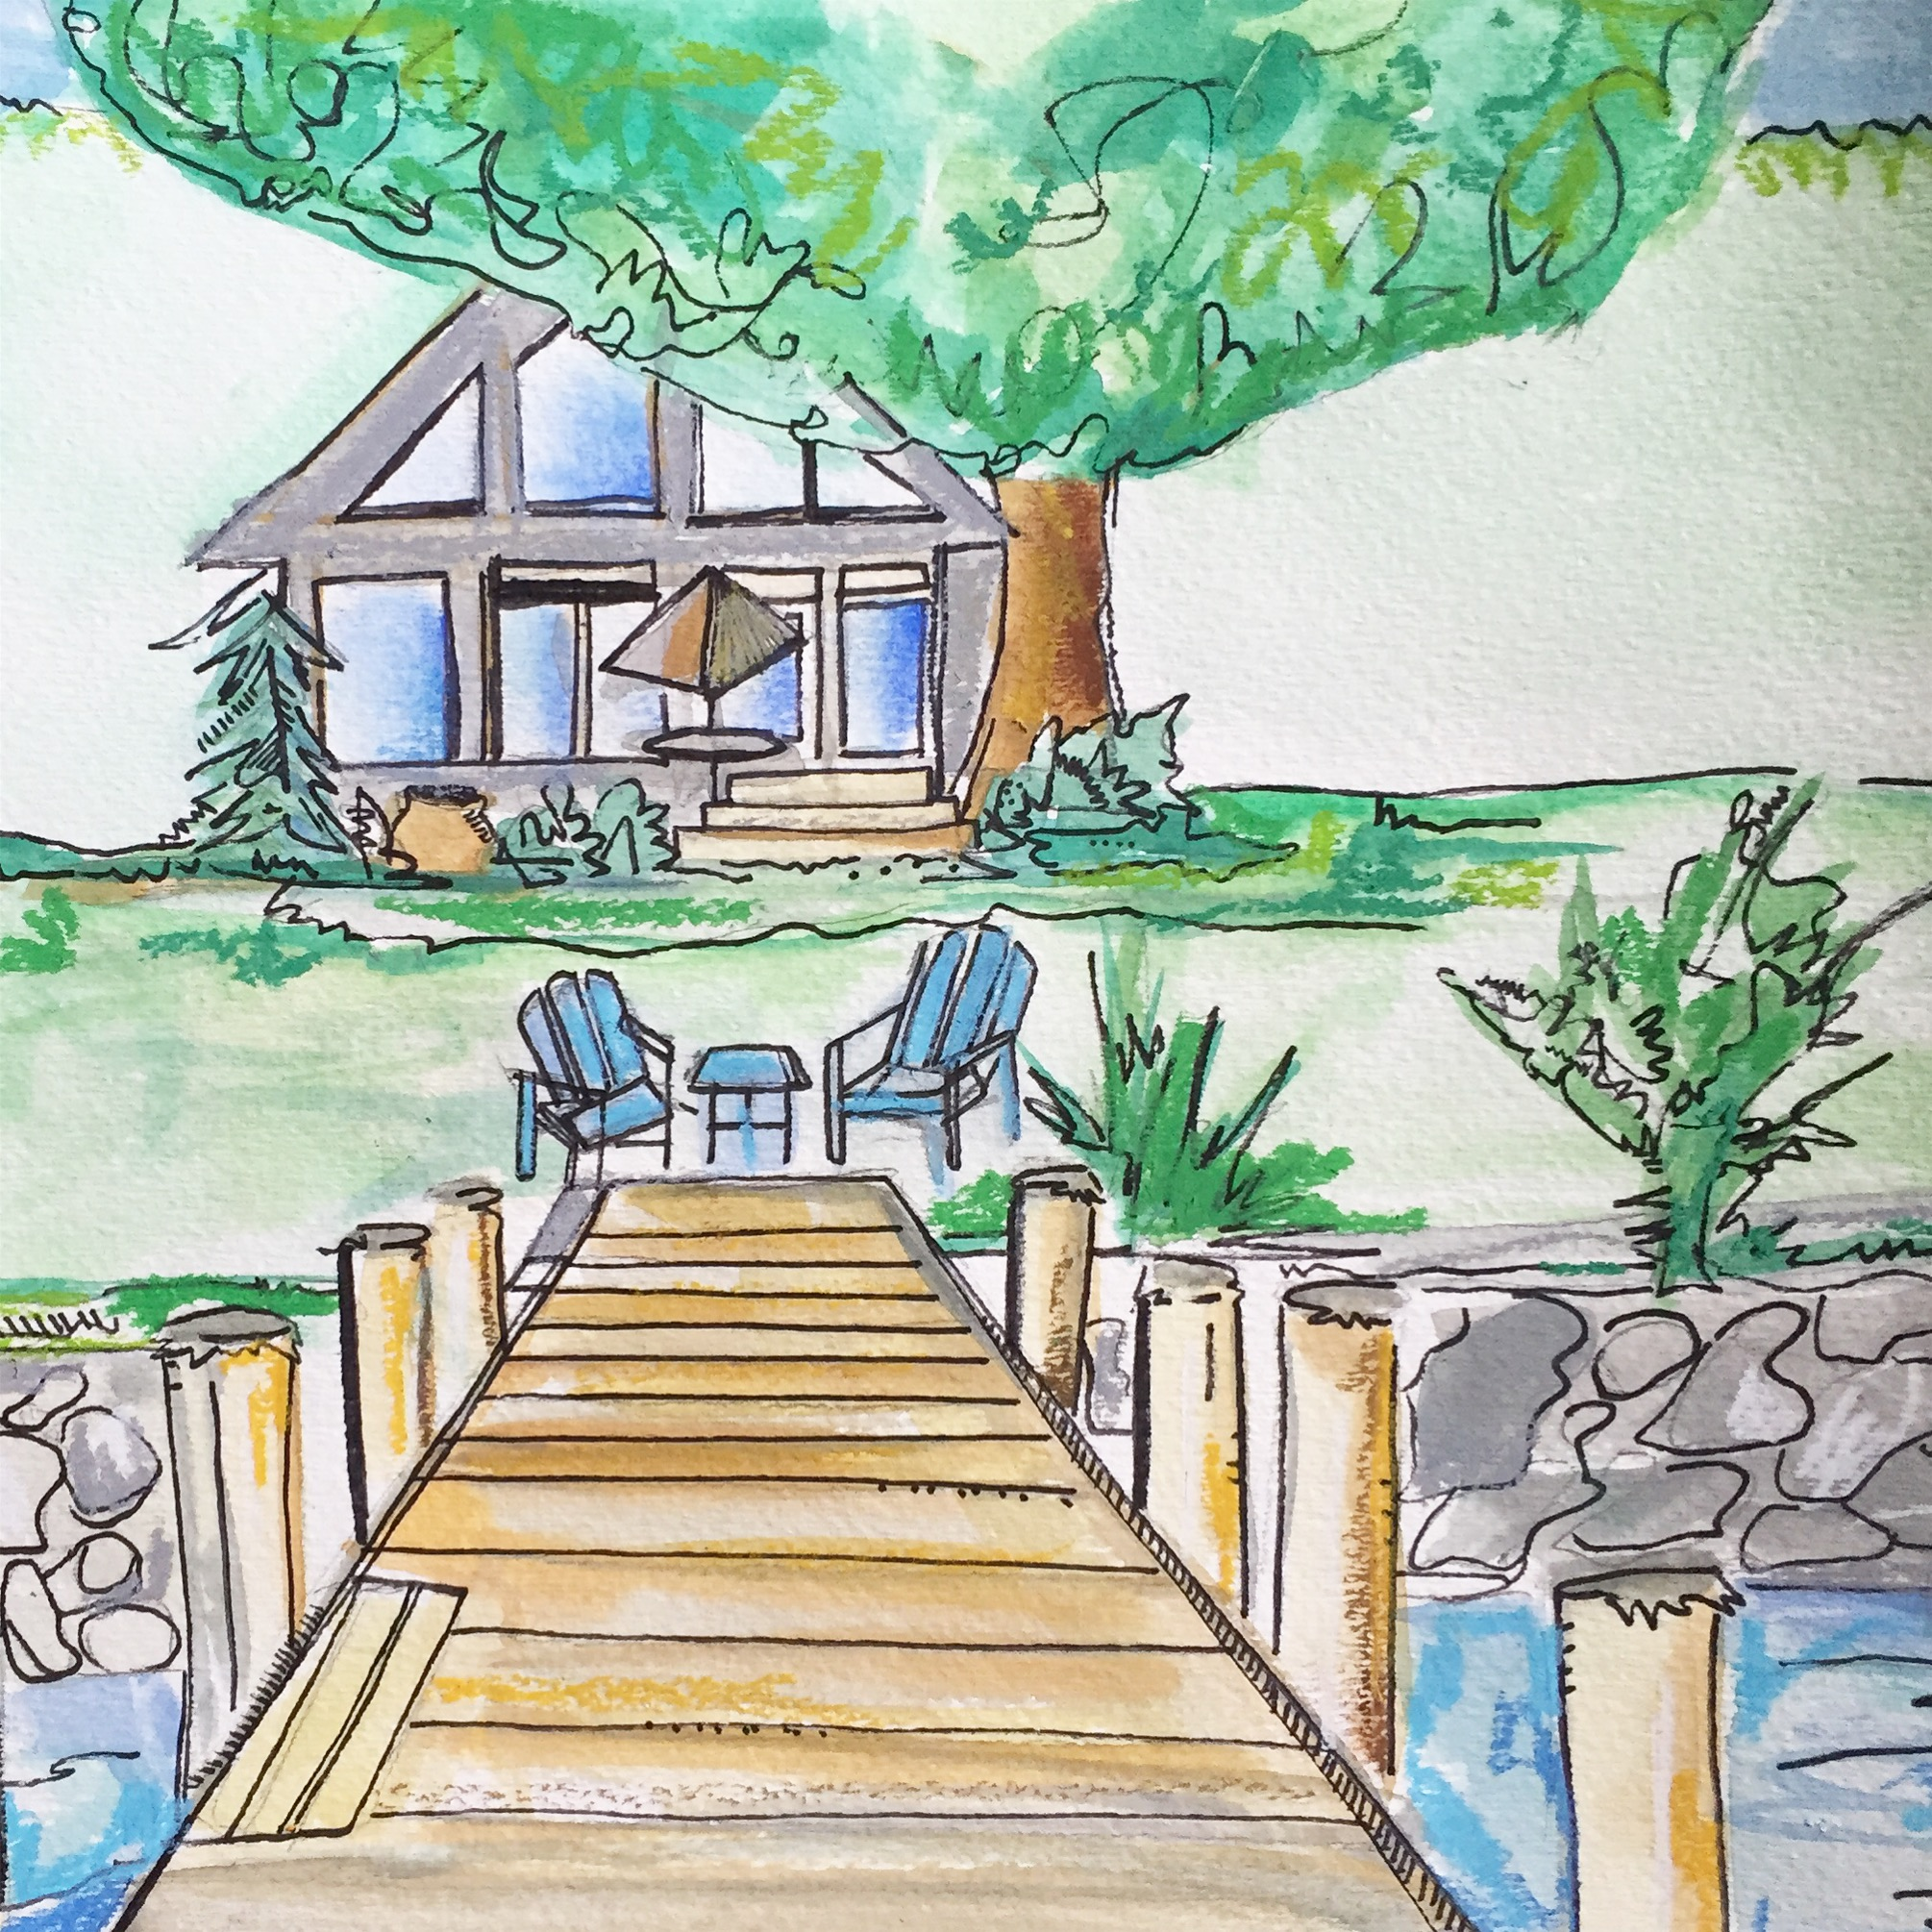 Kent Island, Maryland Commission